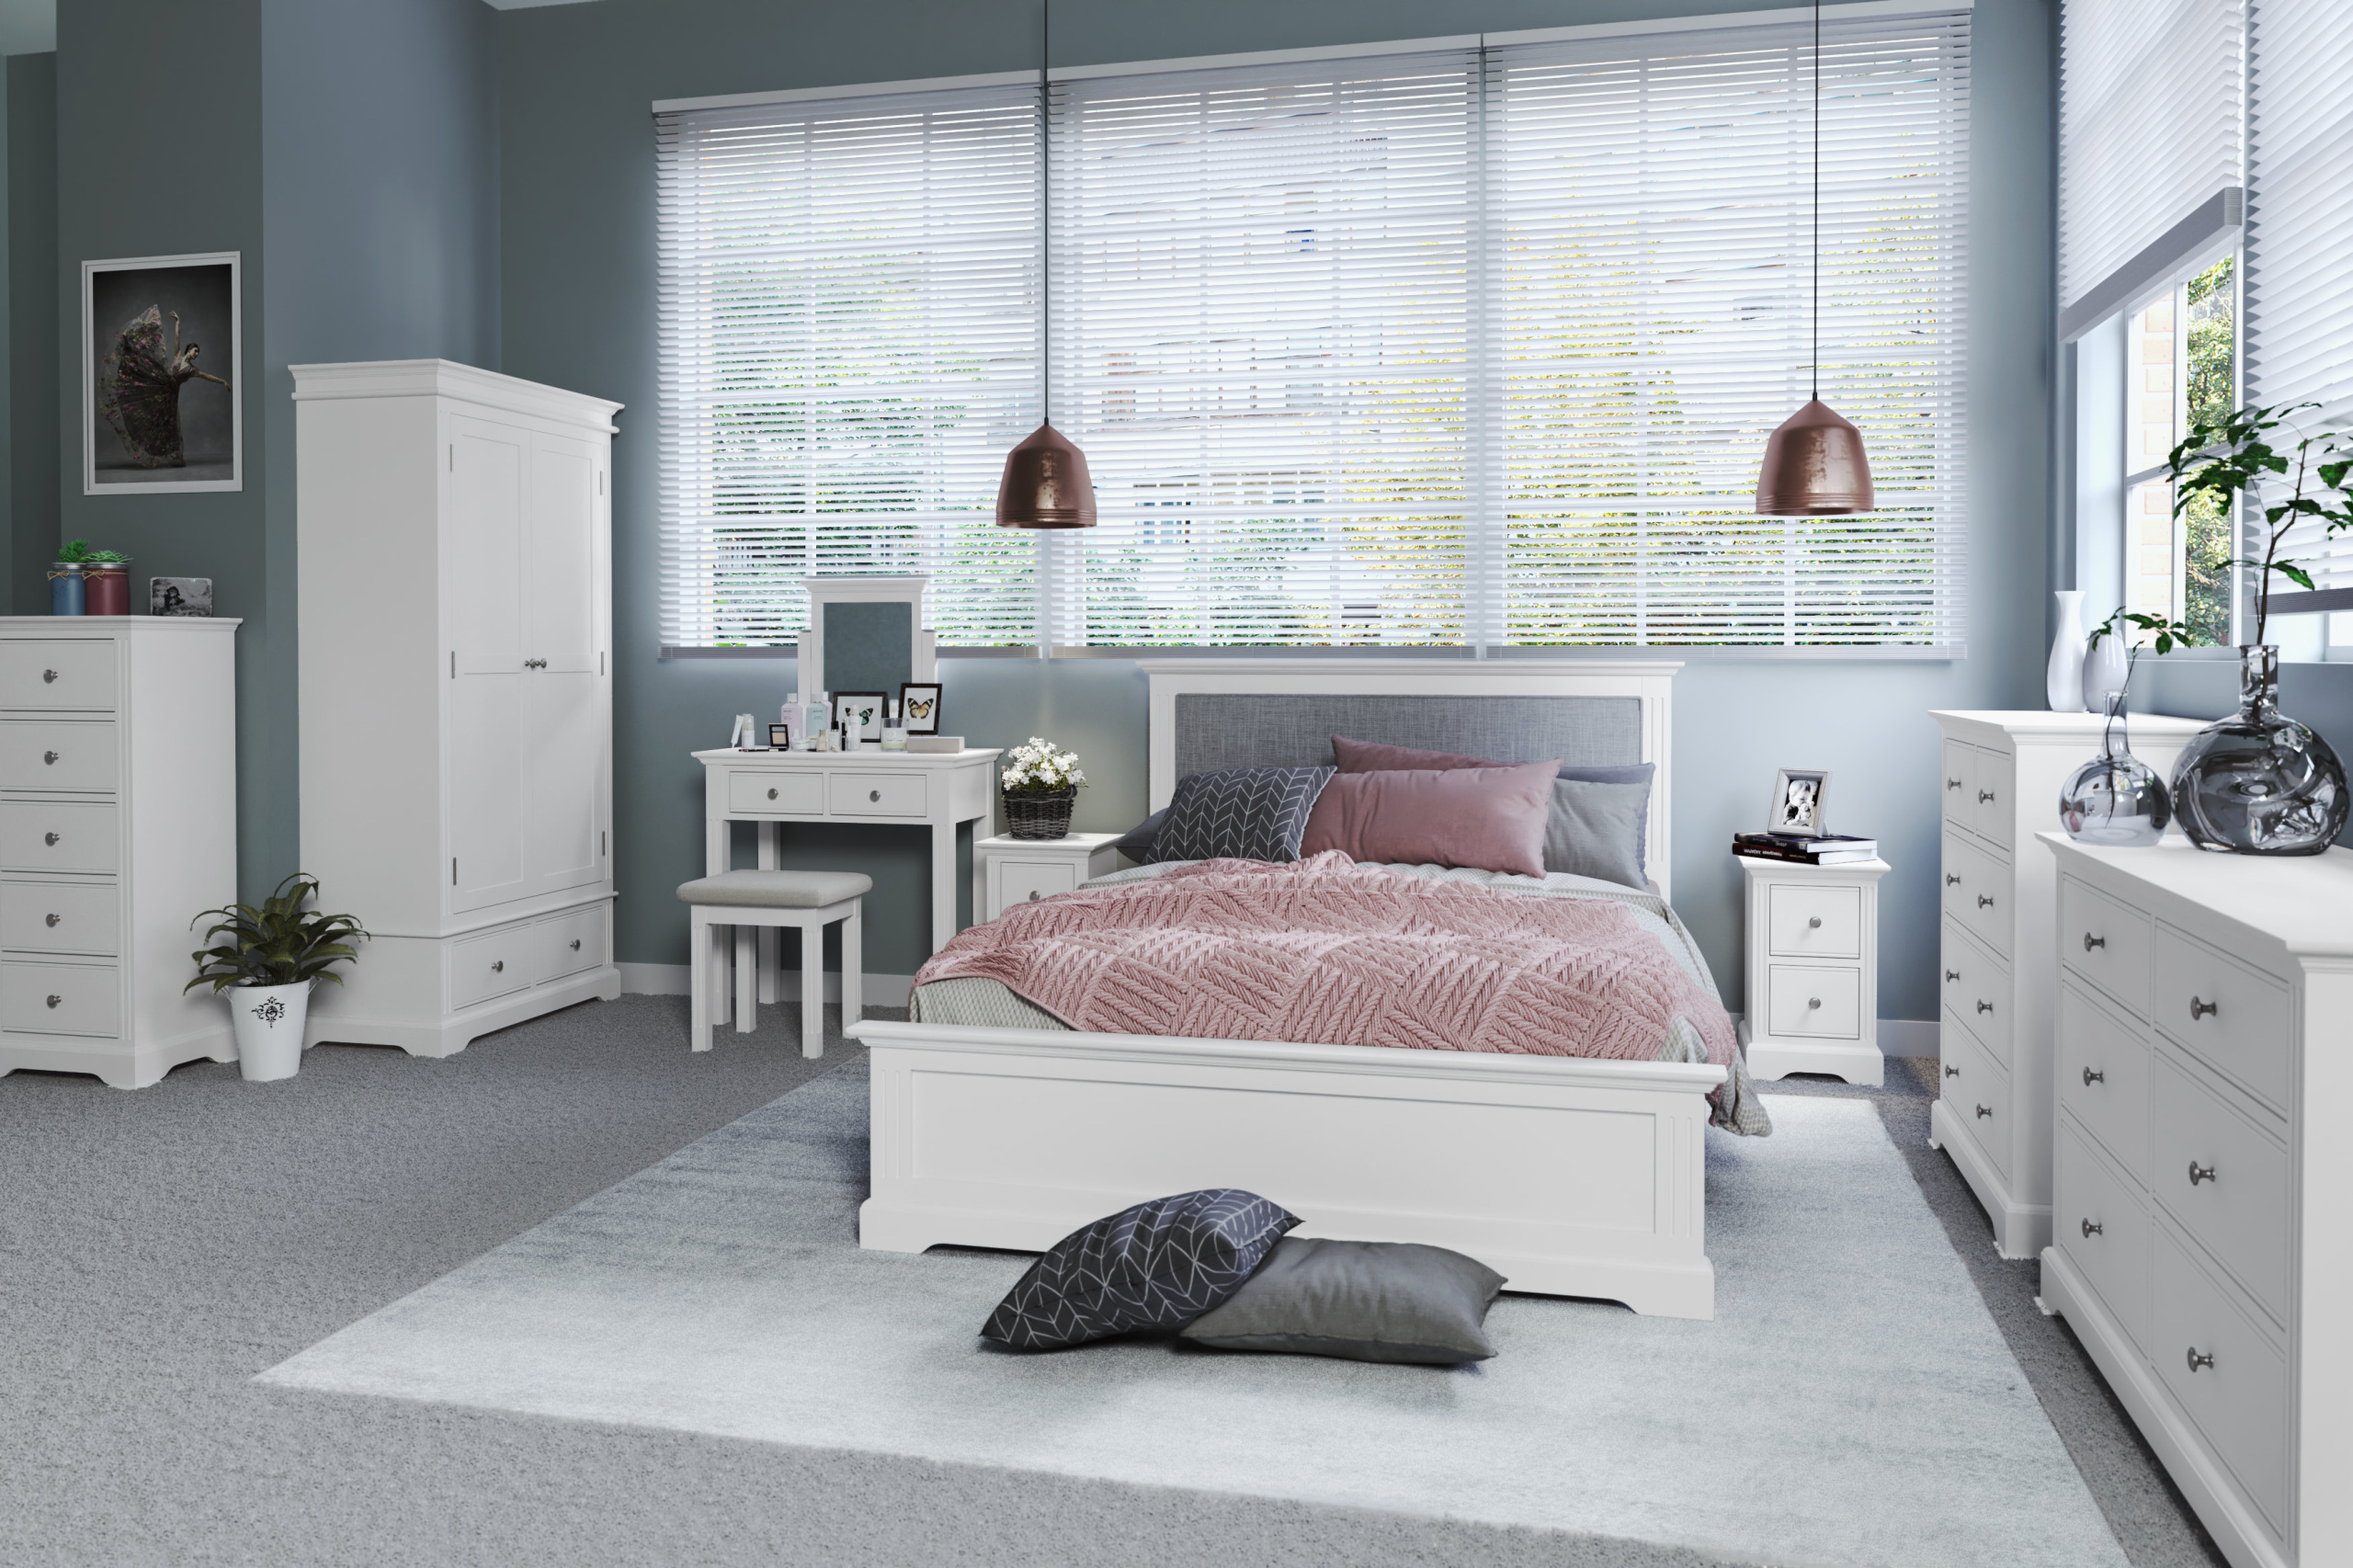 Brompton Painted Fresh White Bed Frame With Grey Fabric Headboard 3 0 4 6 5 0